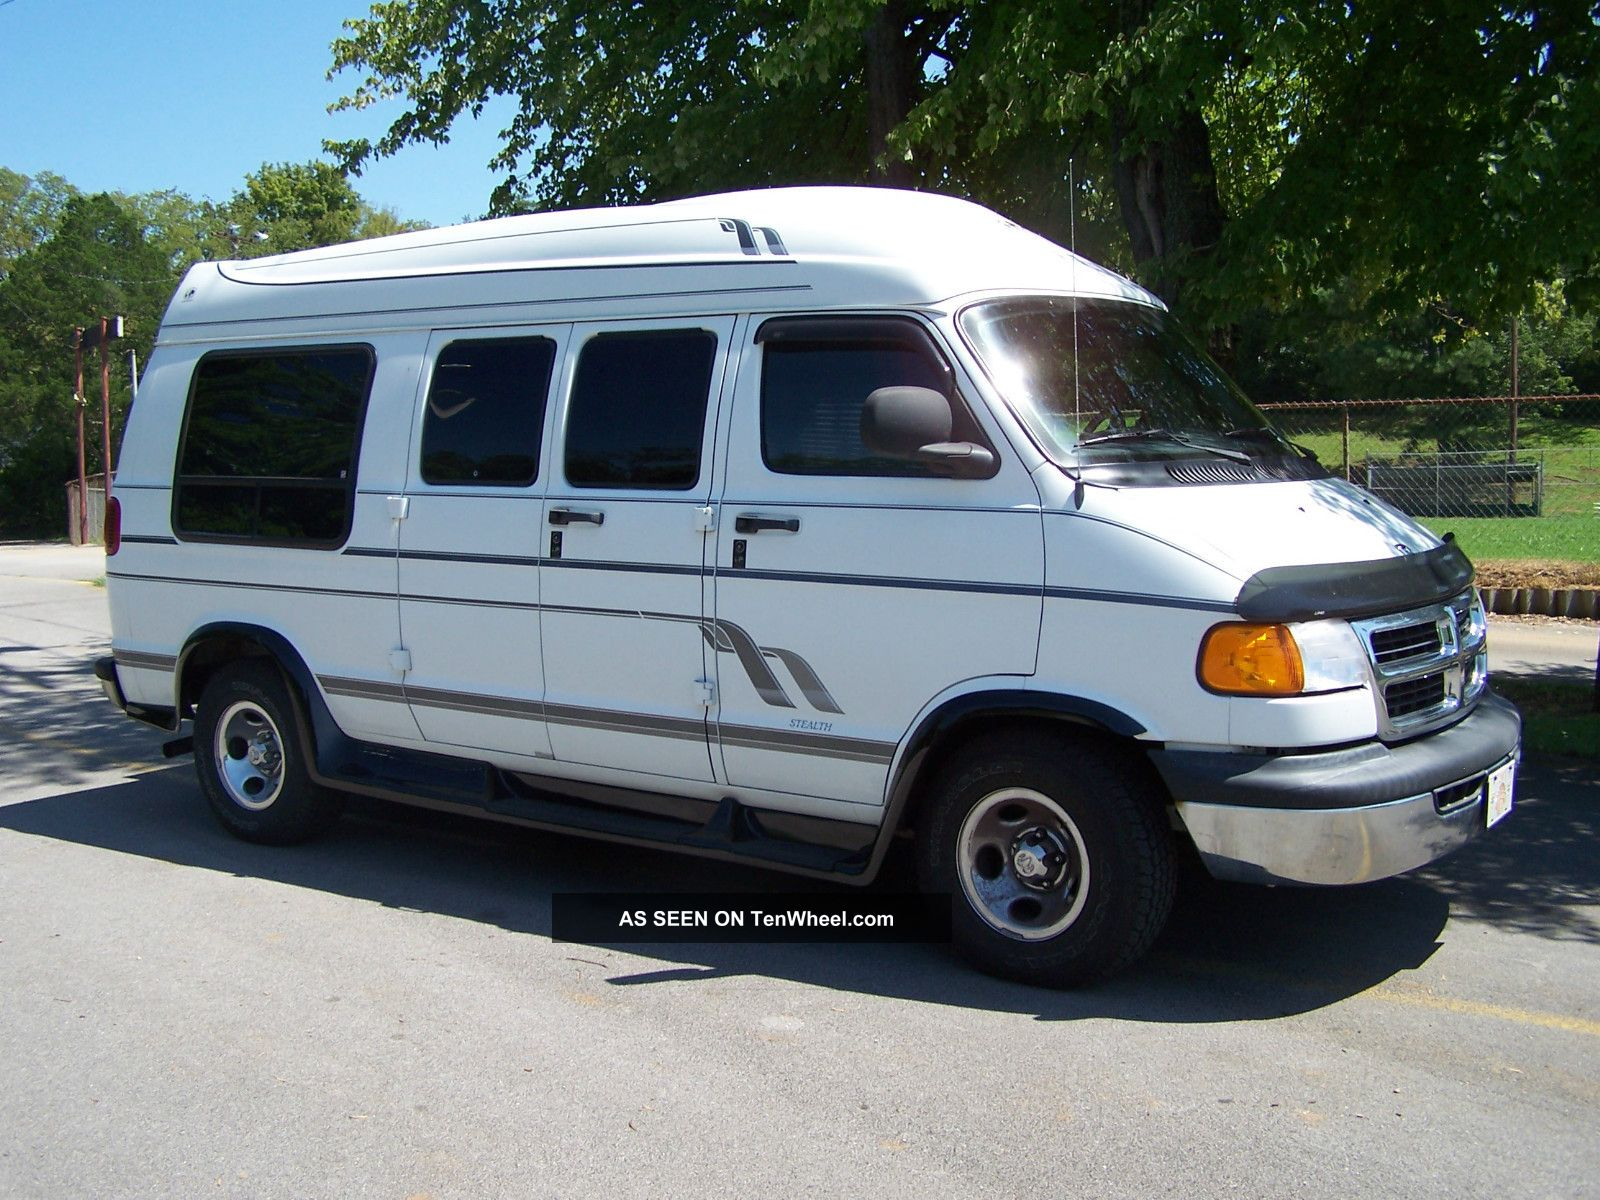 2000 Dodge Ram 1500 Conversion Van